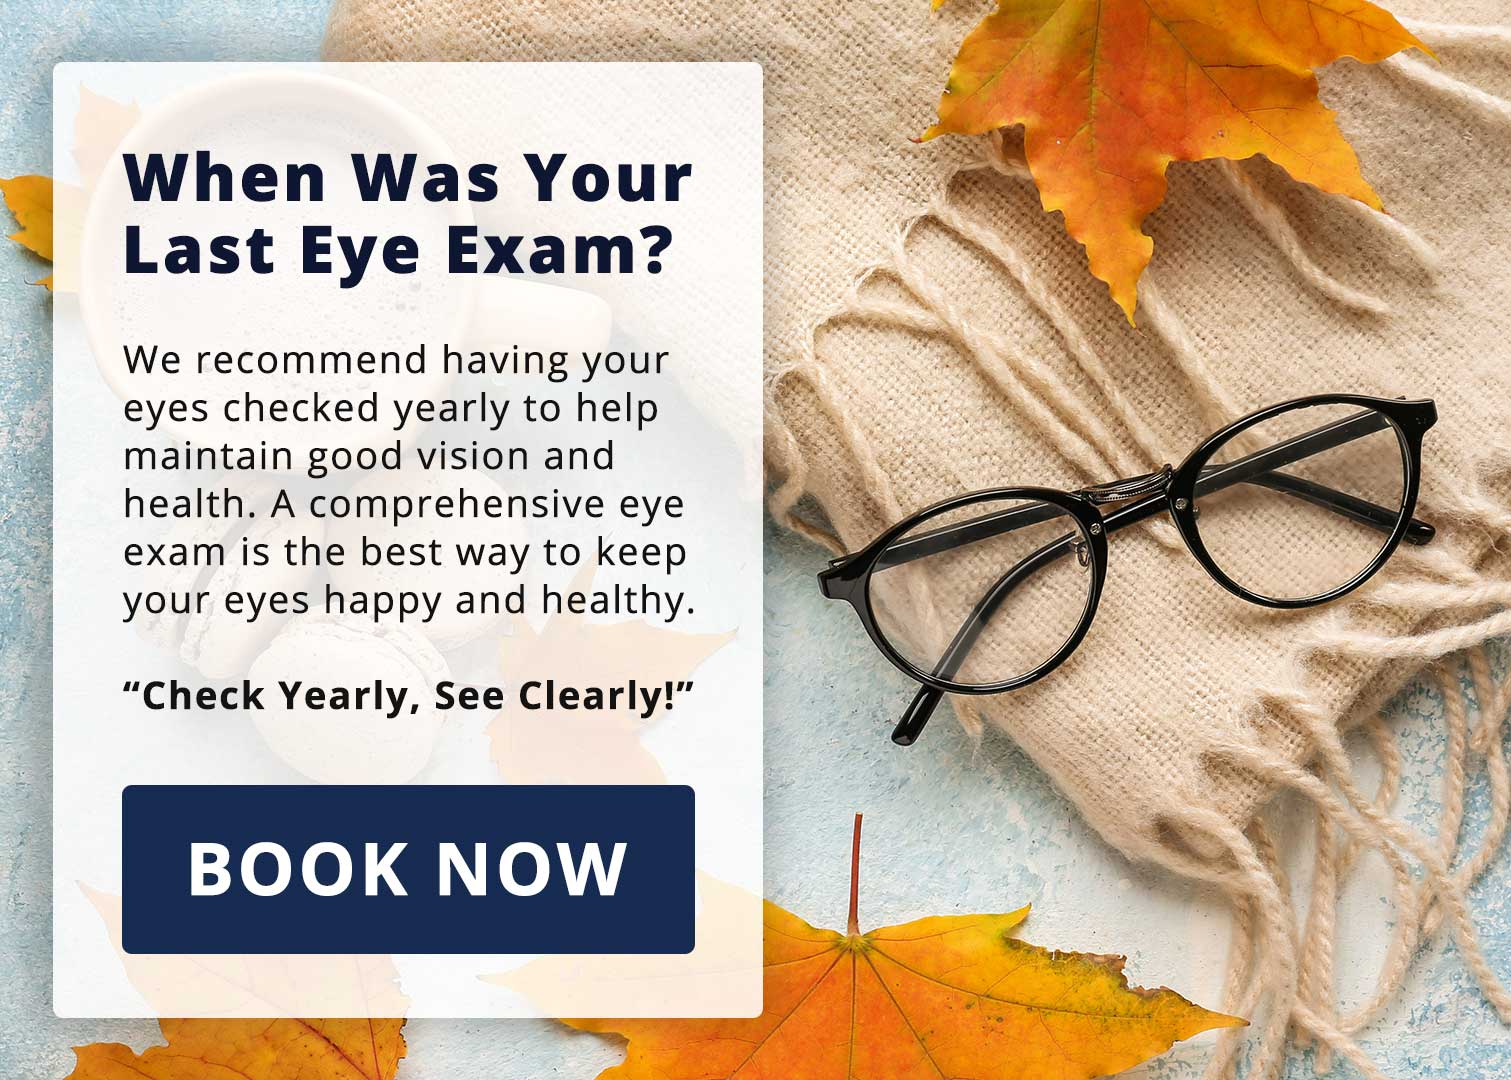 When was your last eye exam